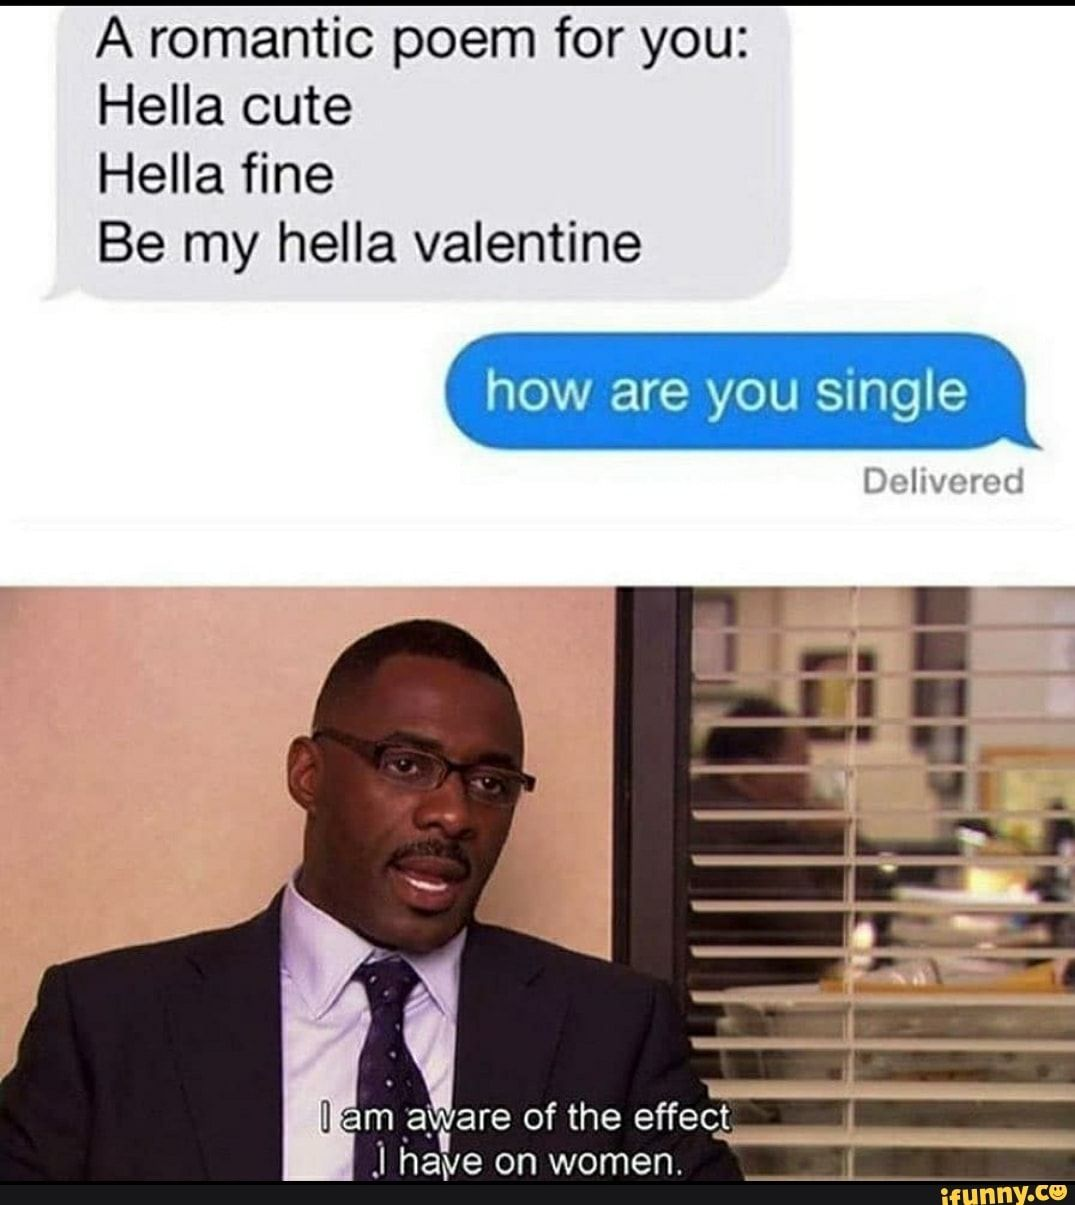 A Romantic Poem For You Hella Cute Hella Fine Be My Hella Valentine How Are You Single I Eta I Of The Effect I Have On Women Ifunny In 2020